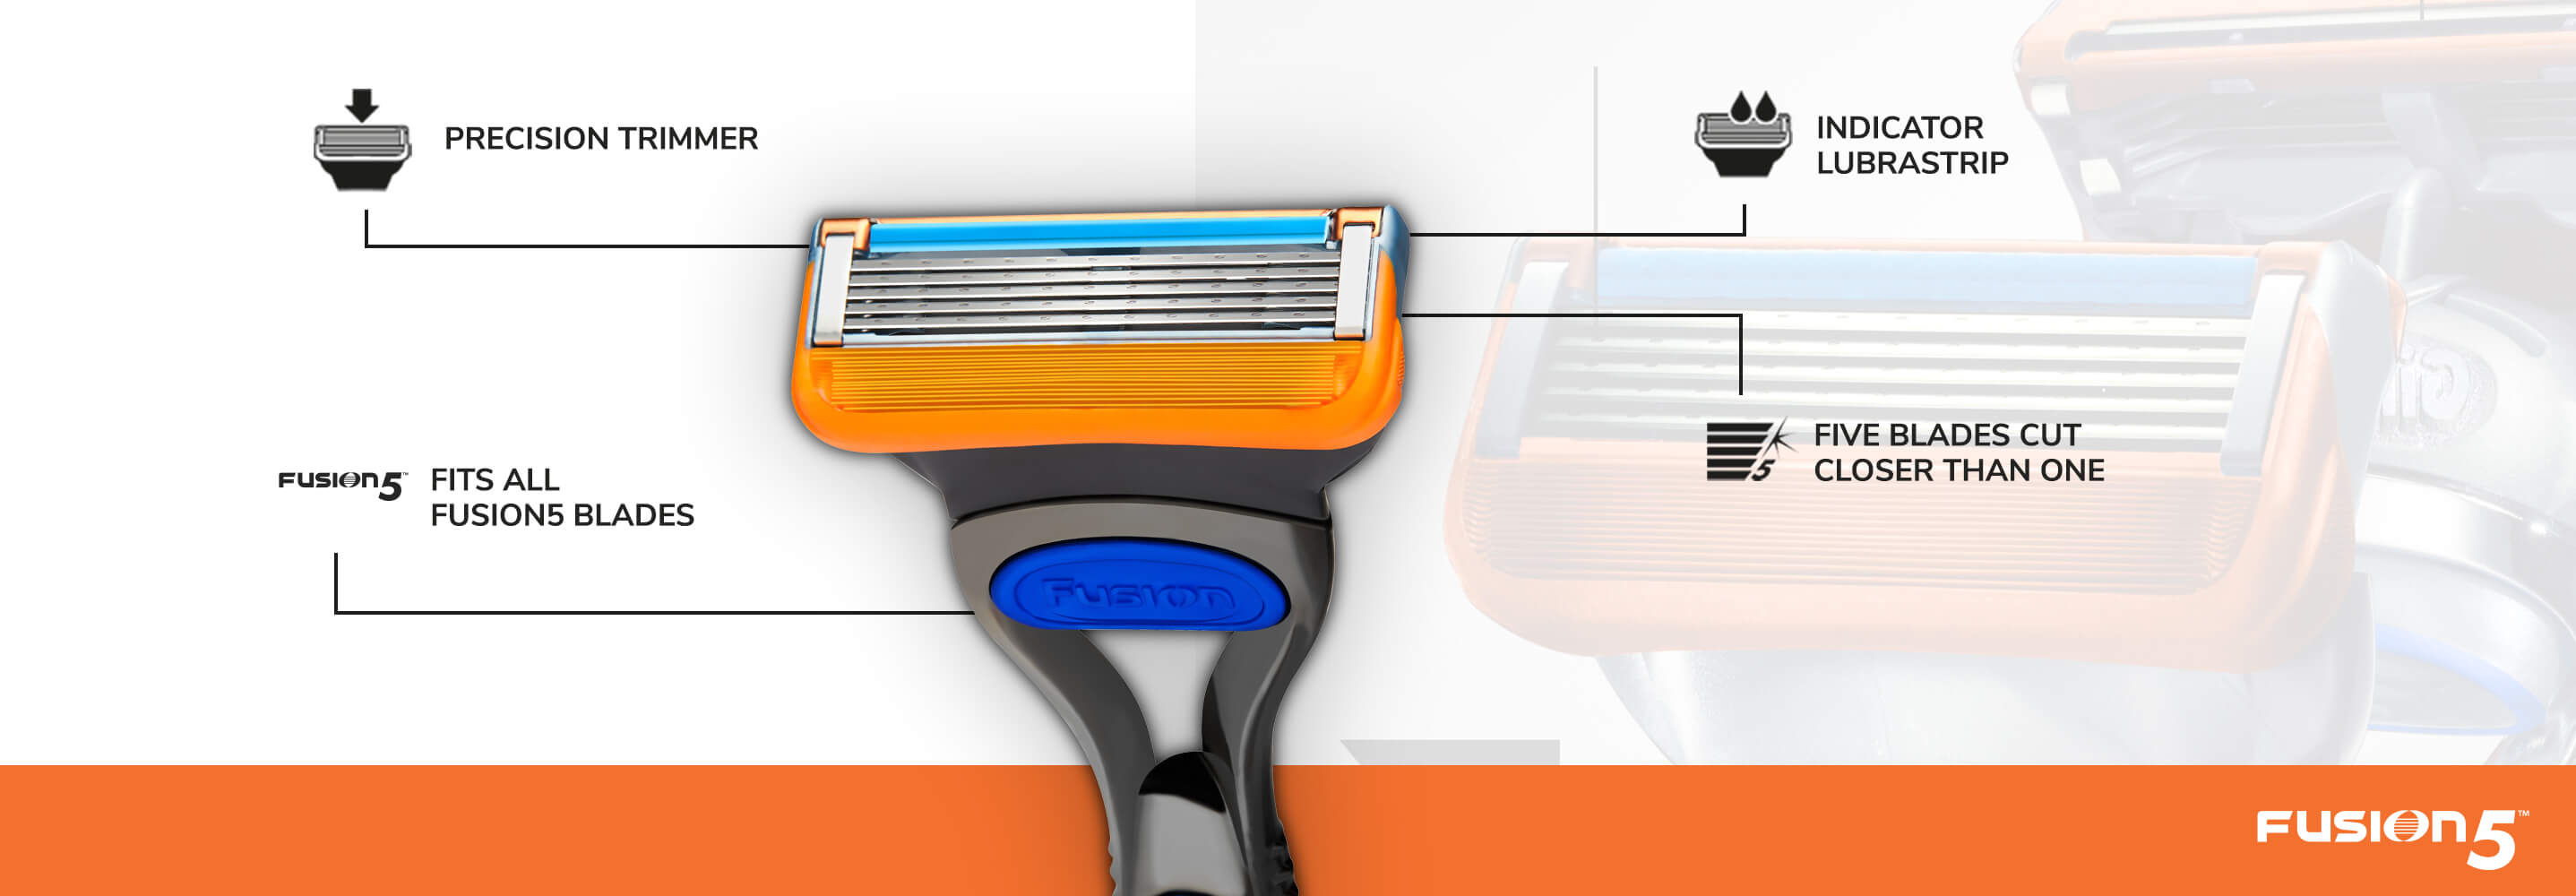 Illustration of Gillette Fusion5 razor.